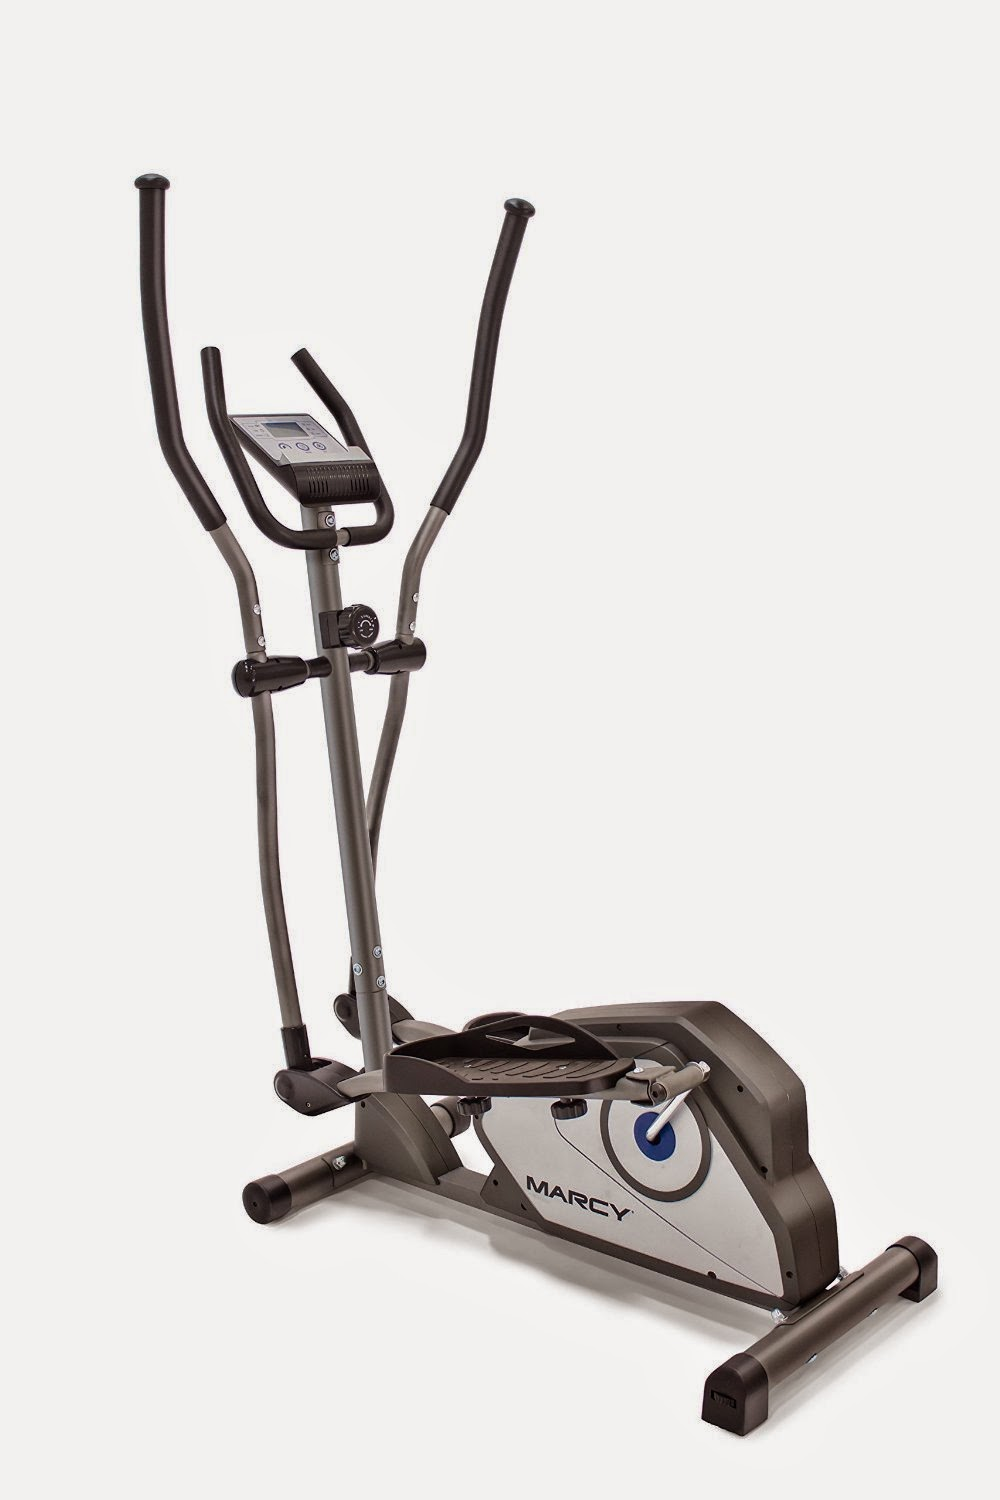 Marcy Marcy NS-40501E Elliptical Trainer, review, straightforward & easy to use, large flywheel and magnetic resistance for smooth natural motion